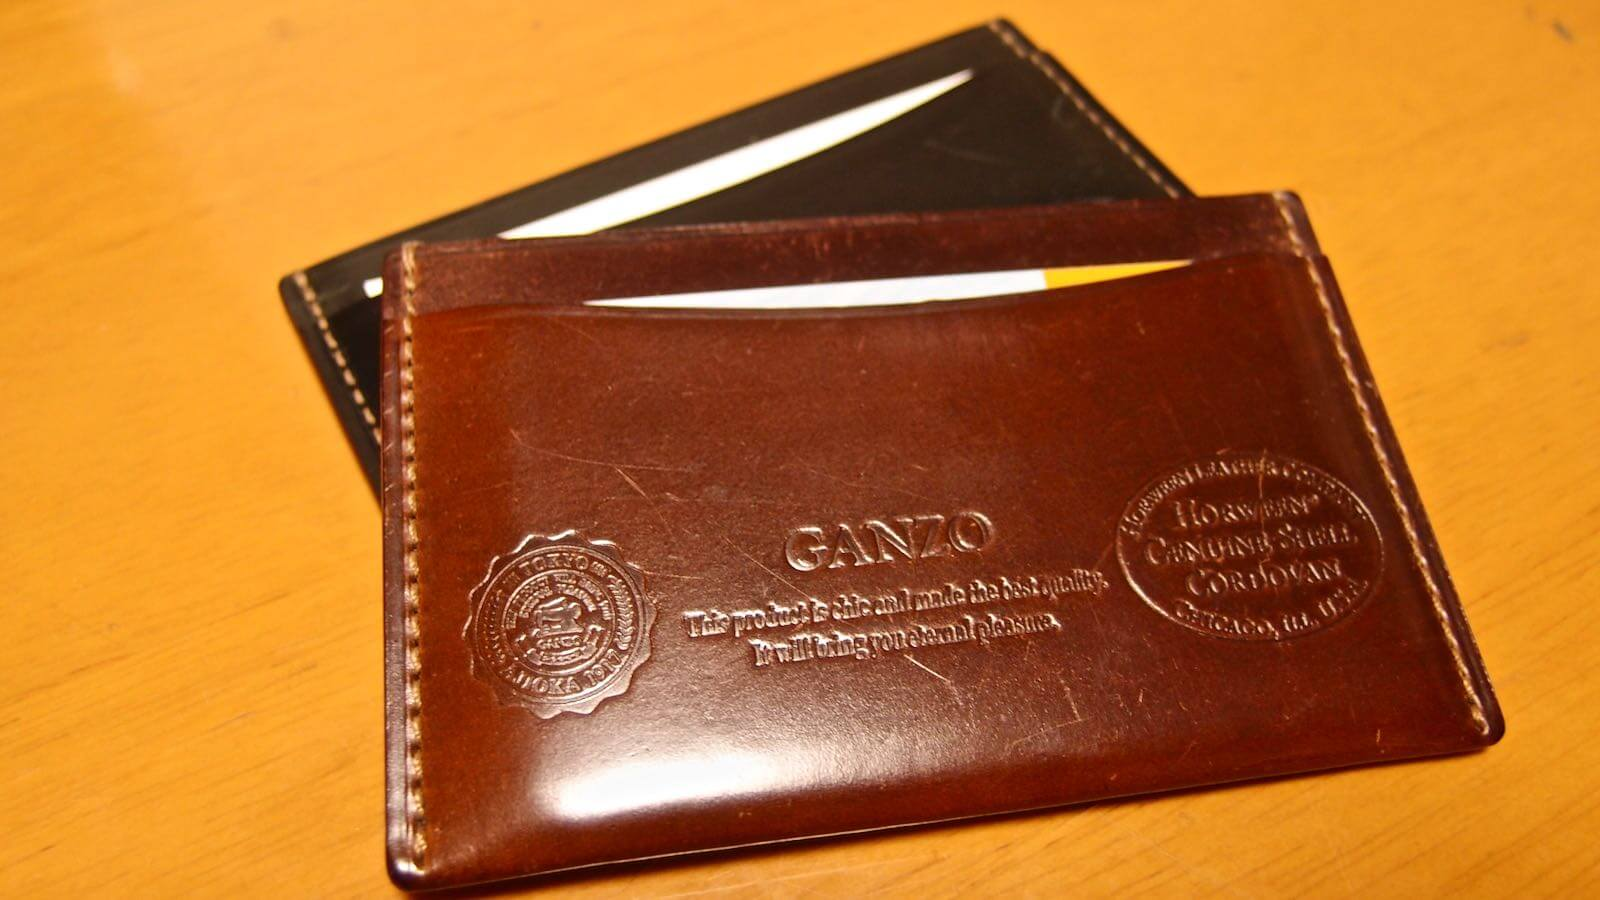 0036 Ganzo Shell Cordovan Business Card Holder 01